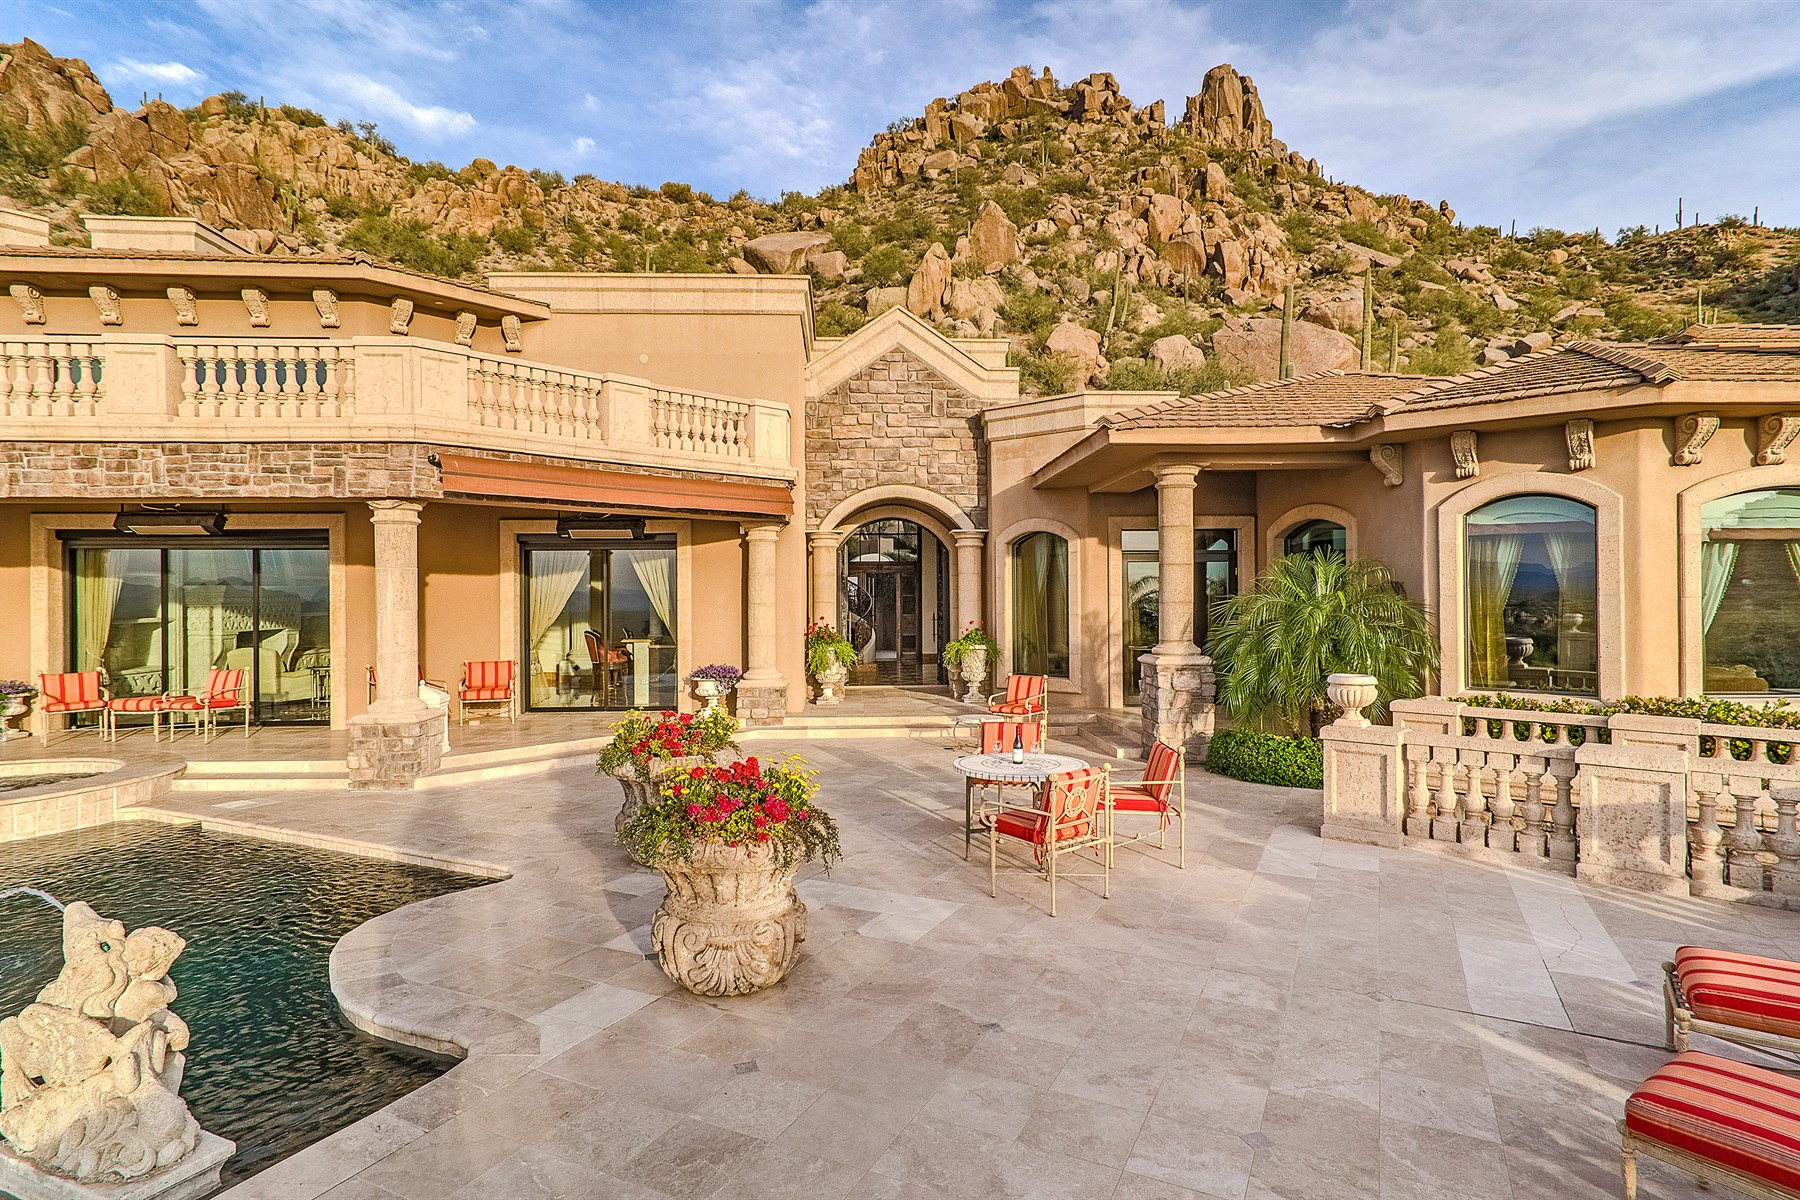 Moradia para Venda às Glorious views emanate from this hillside estate in Estancia 26905 N 98th Way Scottsdale, Arizona, 85262 Estados Unidos